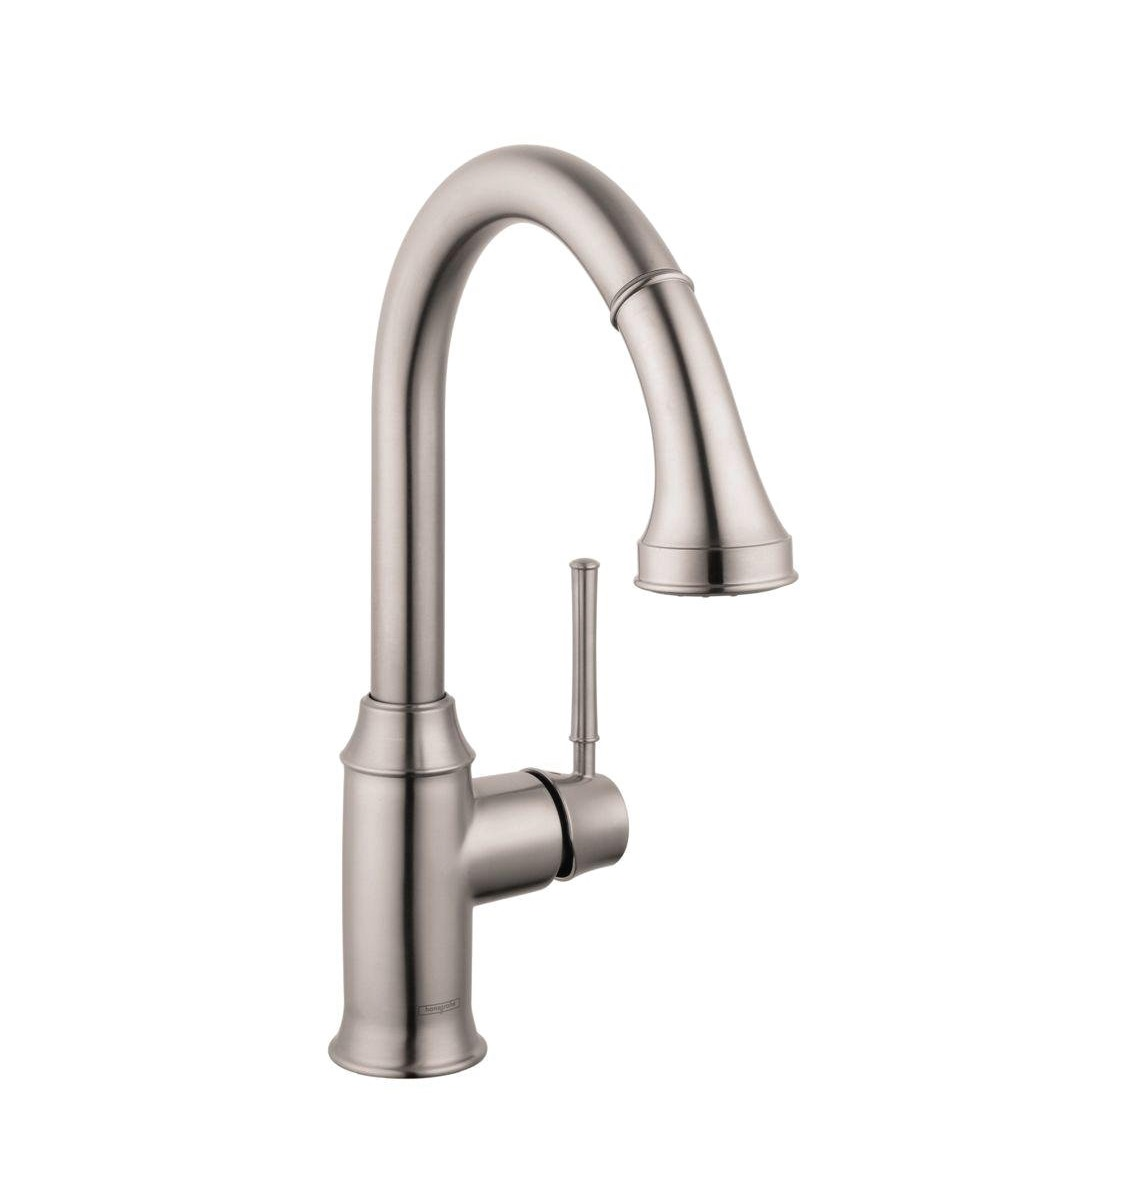 Hansgrohe 04215800 Talis C 2 Spray HighArc Kitchen Faucet Pull Down In Steel